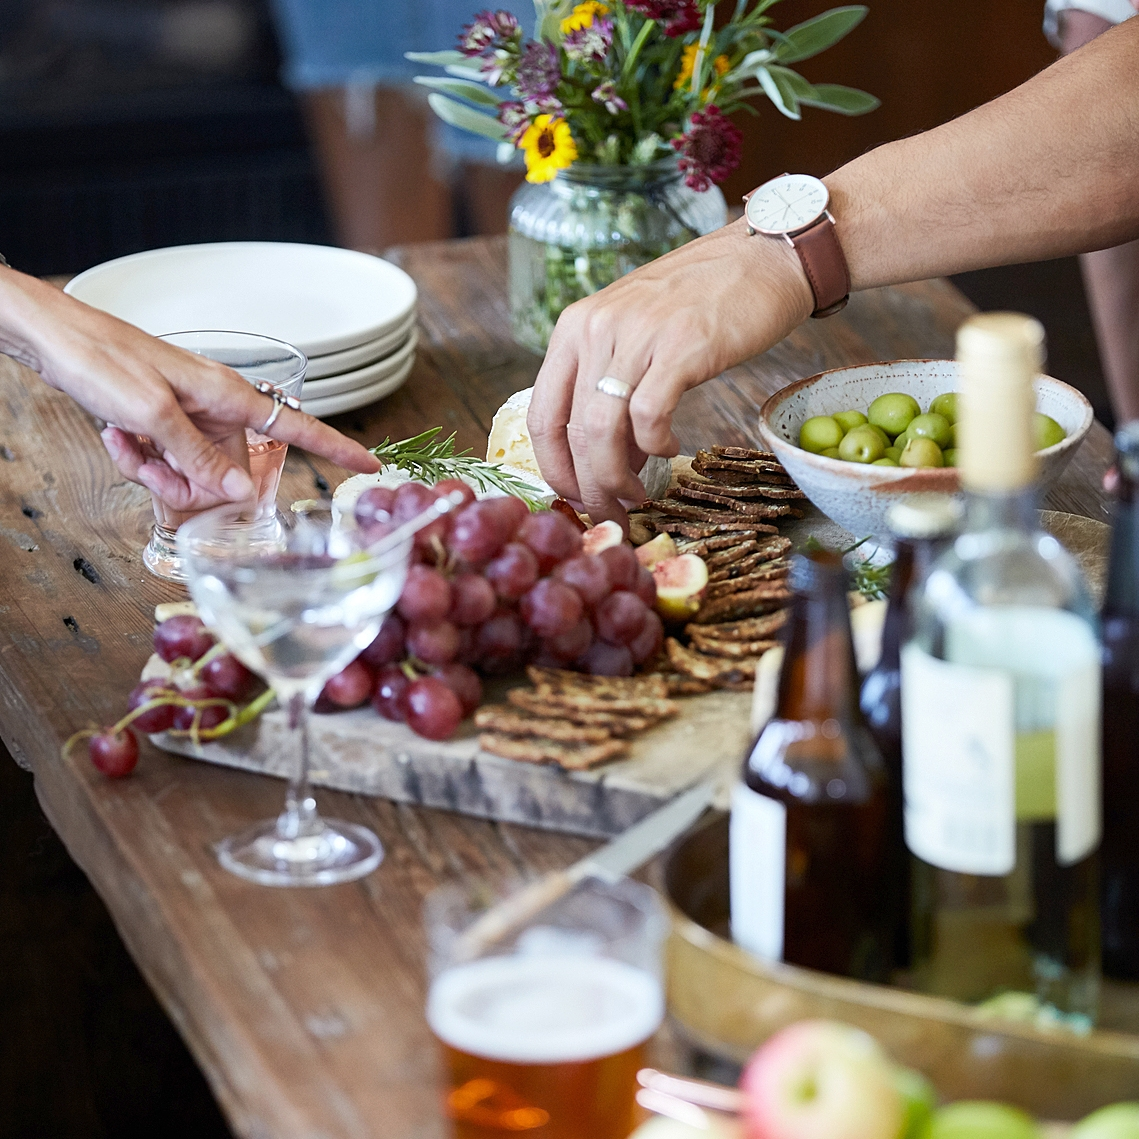 Hands reaching for food and beverage items on outdoor table